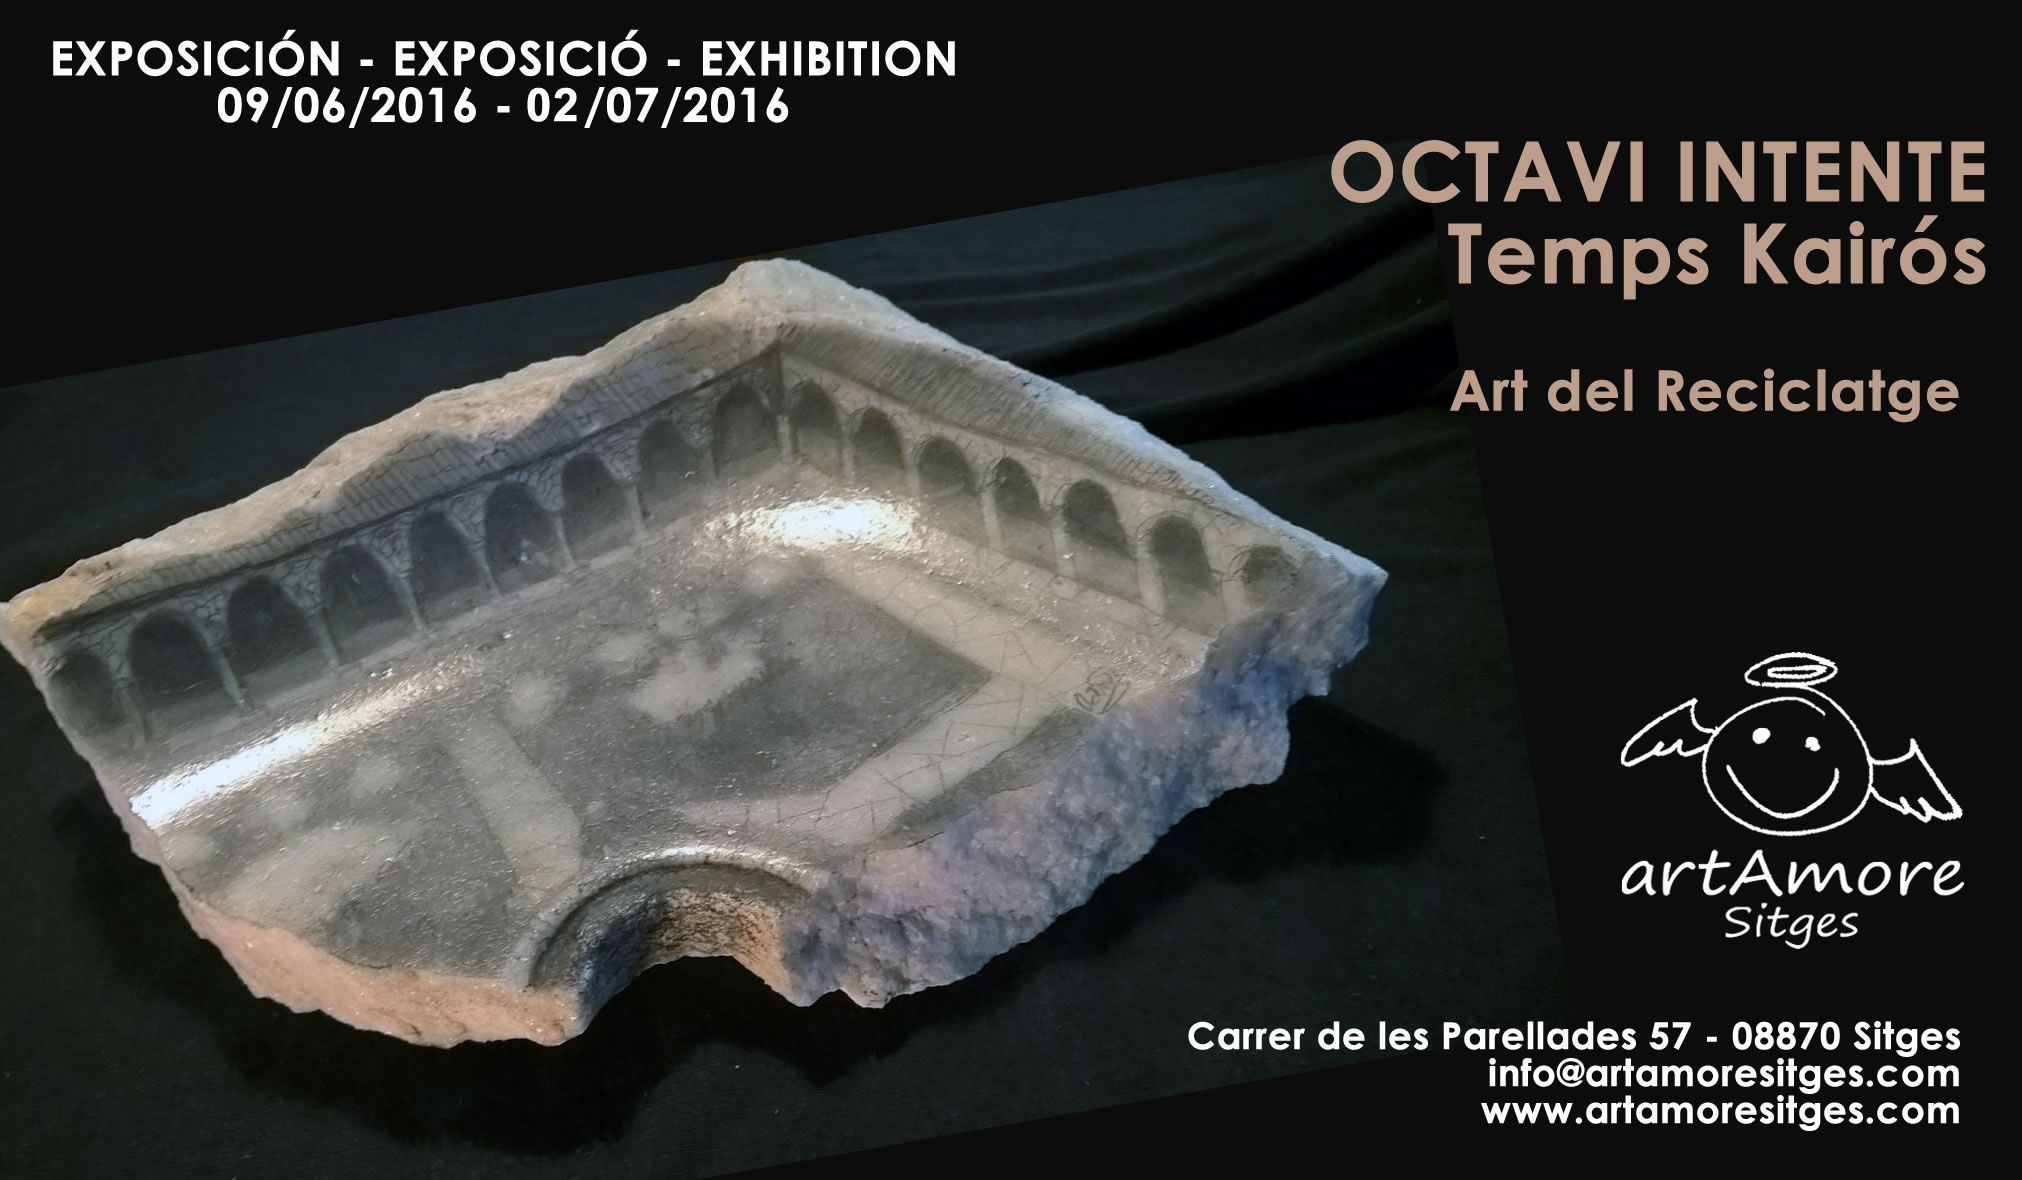 Expo Octavi Intente – Temps Kairòs